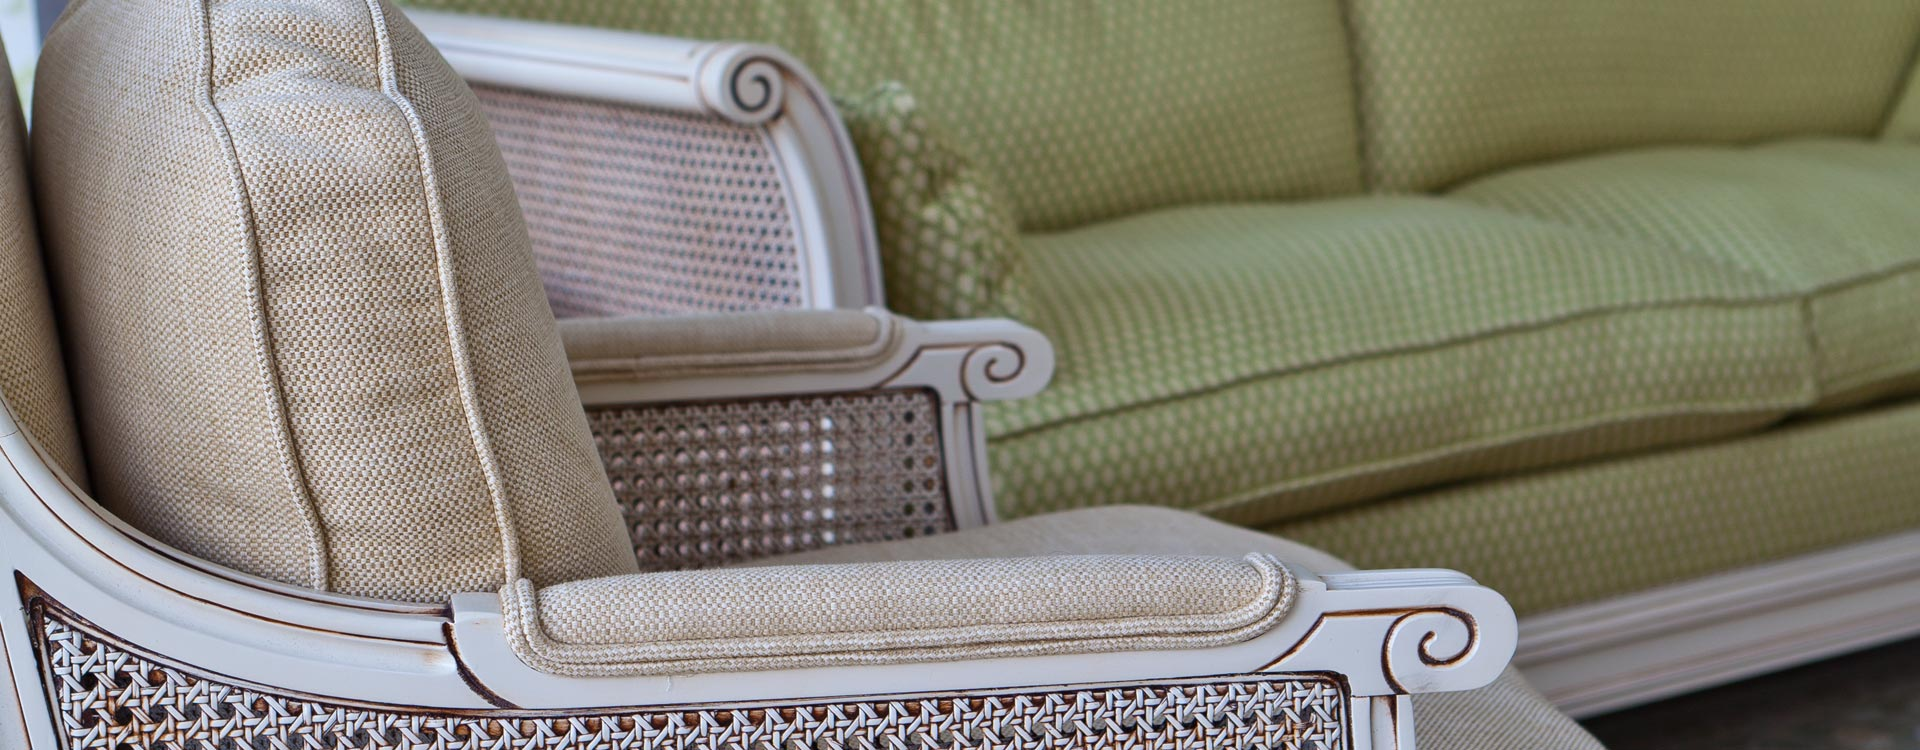 Close up detail view of a conservatory chair